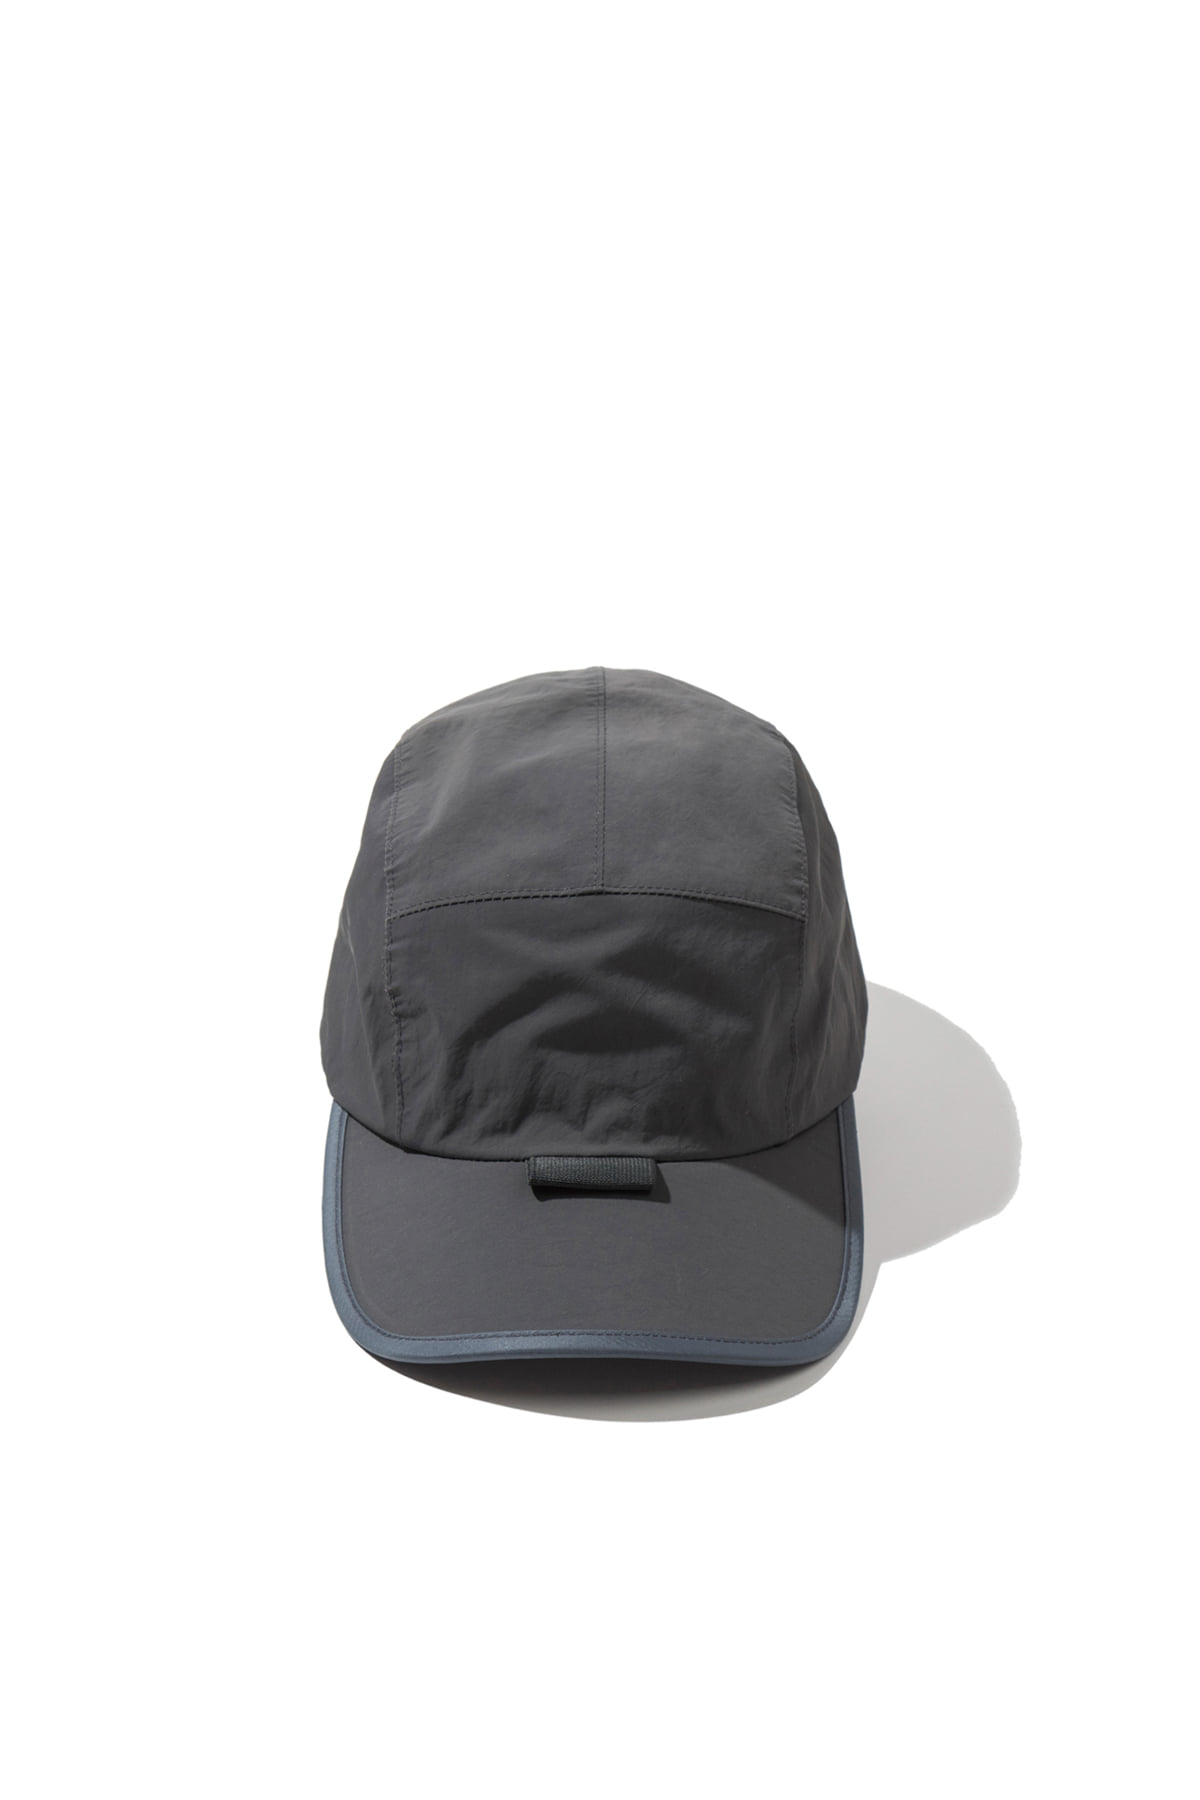 Blankof : HLG 01 C2 Volley Cap (Olive Grey)